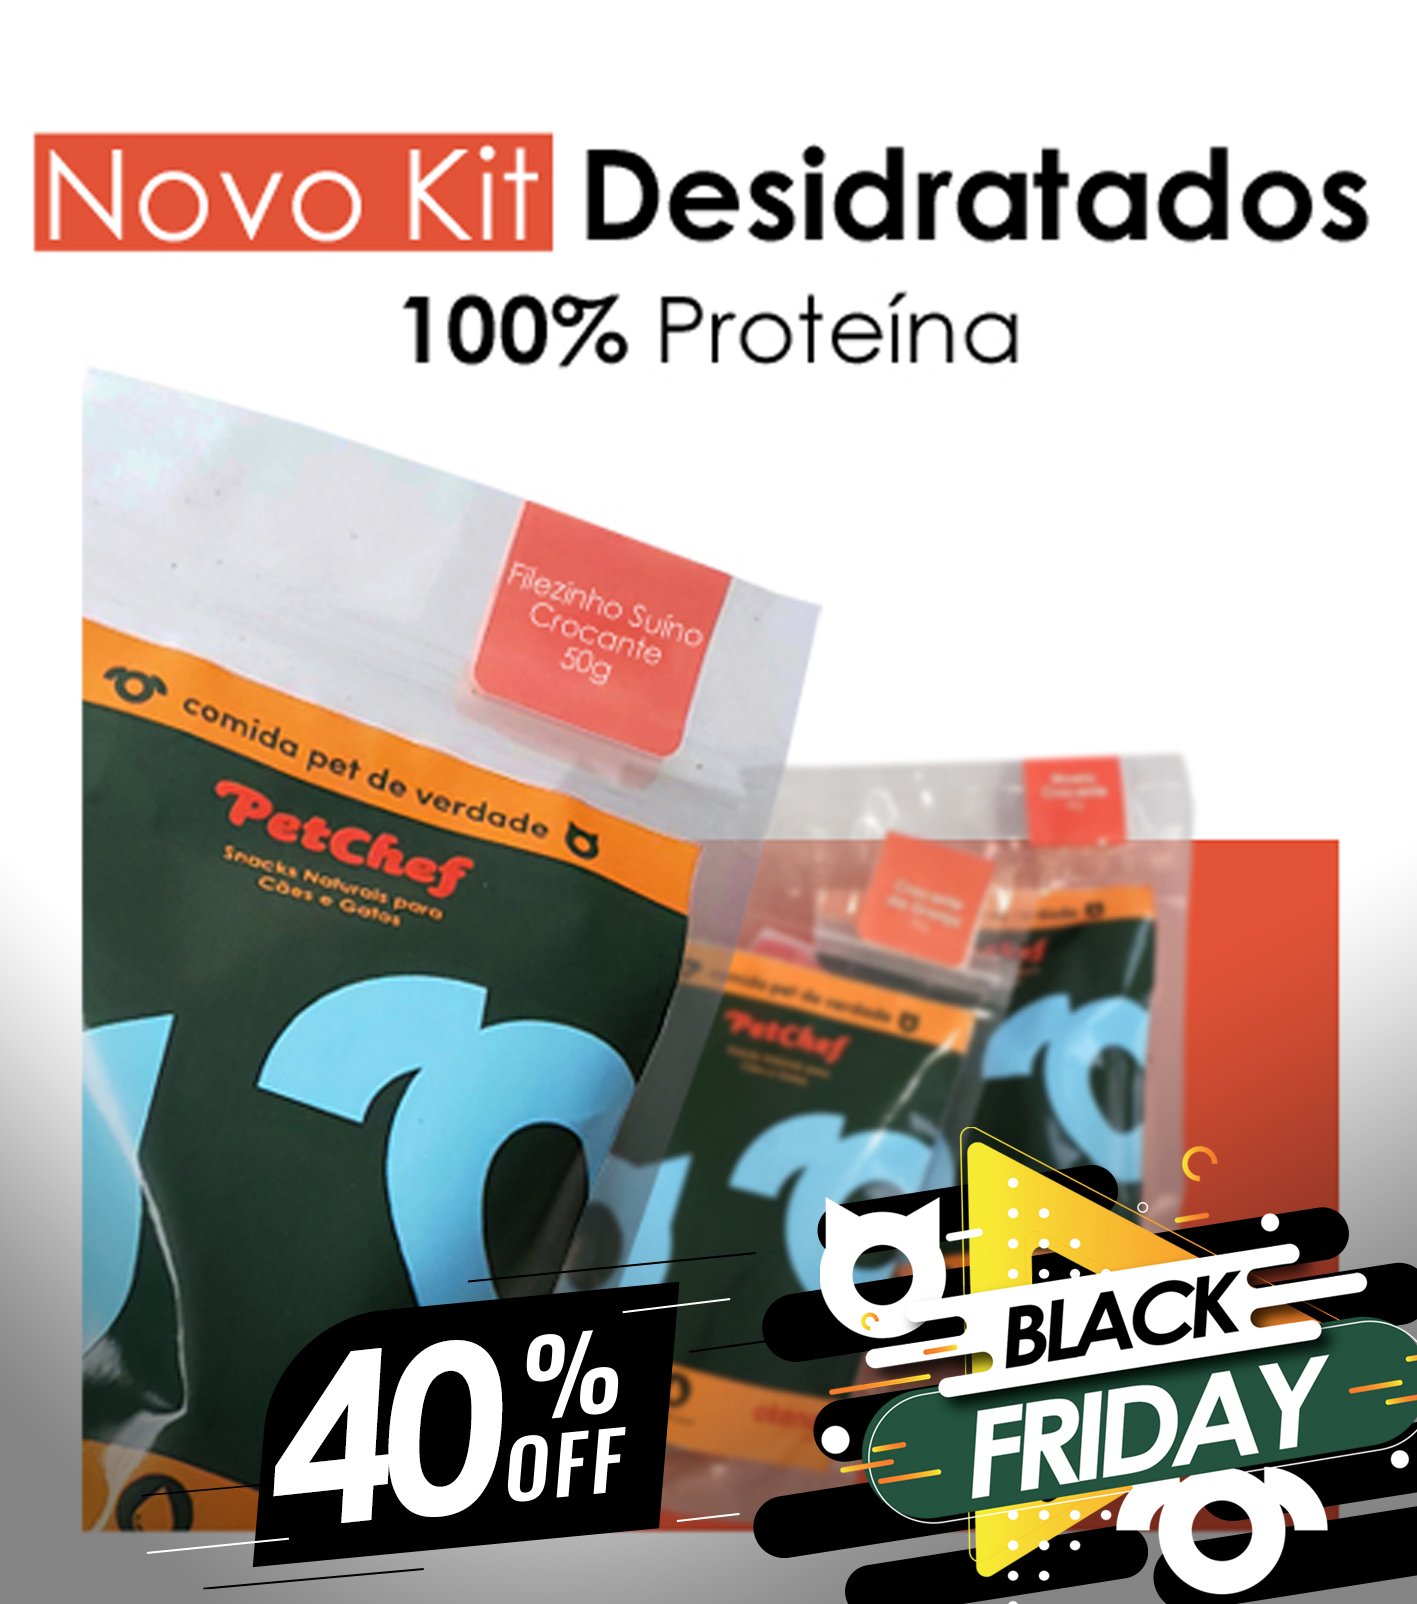 Kit Desidratados BLACK FRIDAY